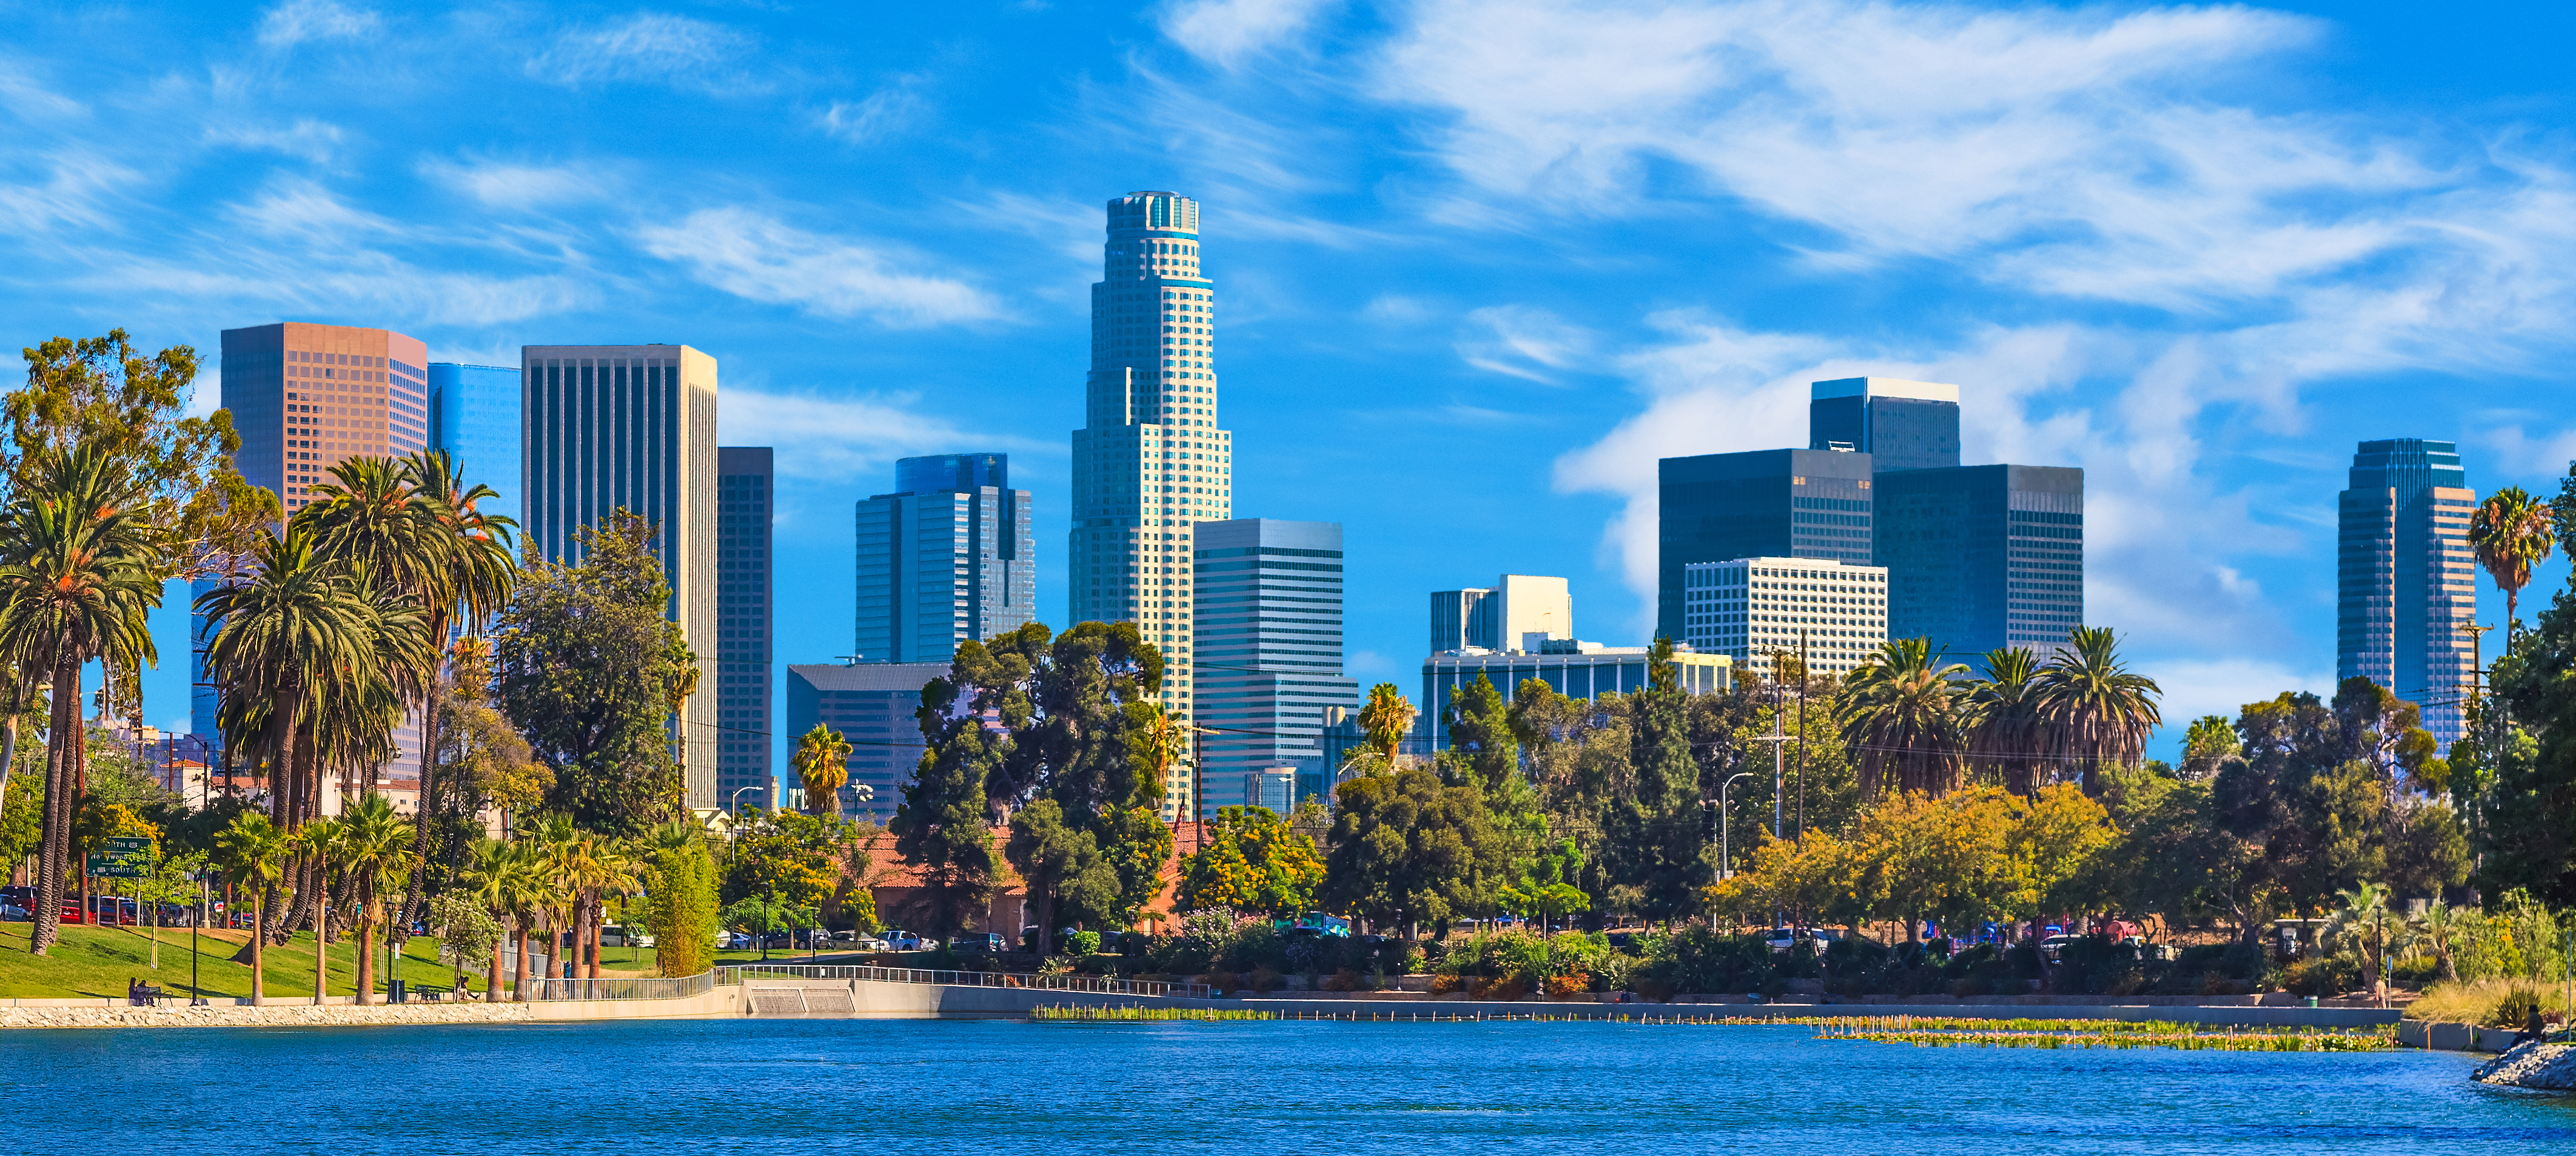 Summer day with the skyline of Los Angeles with water patterns of lake in forground, California